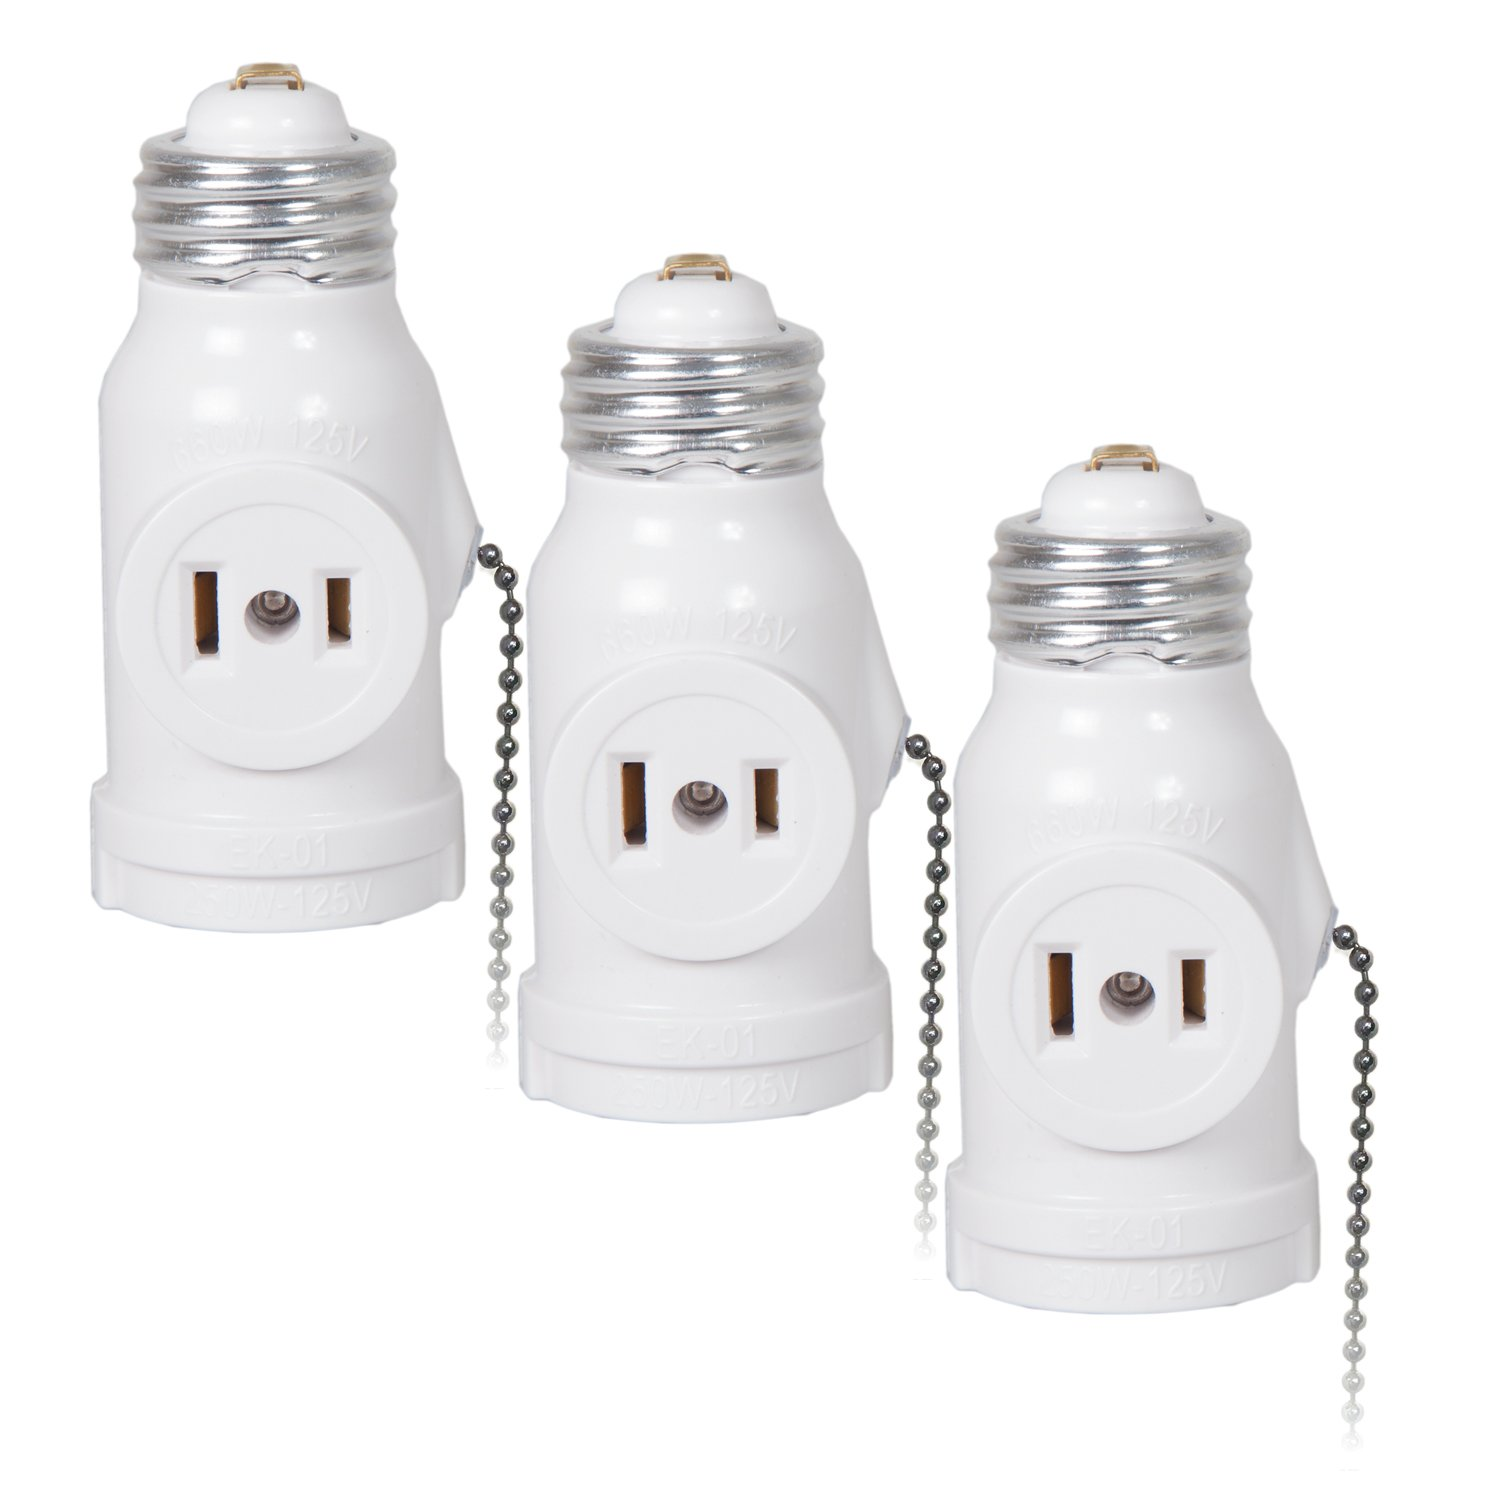 Maxxima Dual Outlet Light Socket Adapter, with Pull Chain, Turn E26 Standard Light Socket into Electrical Outlets (Pack of 3)